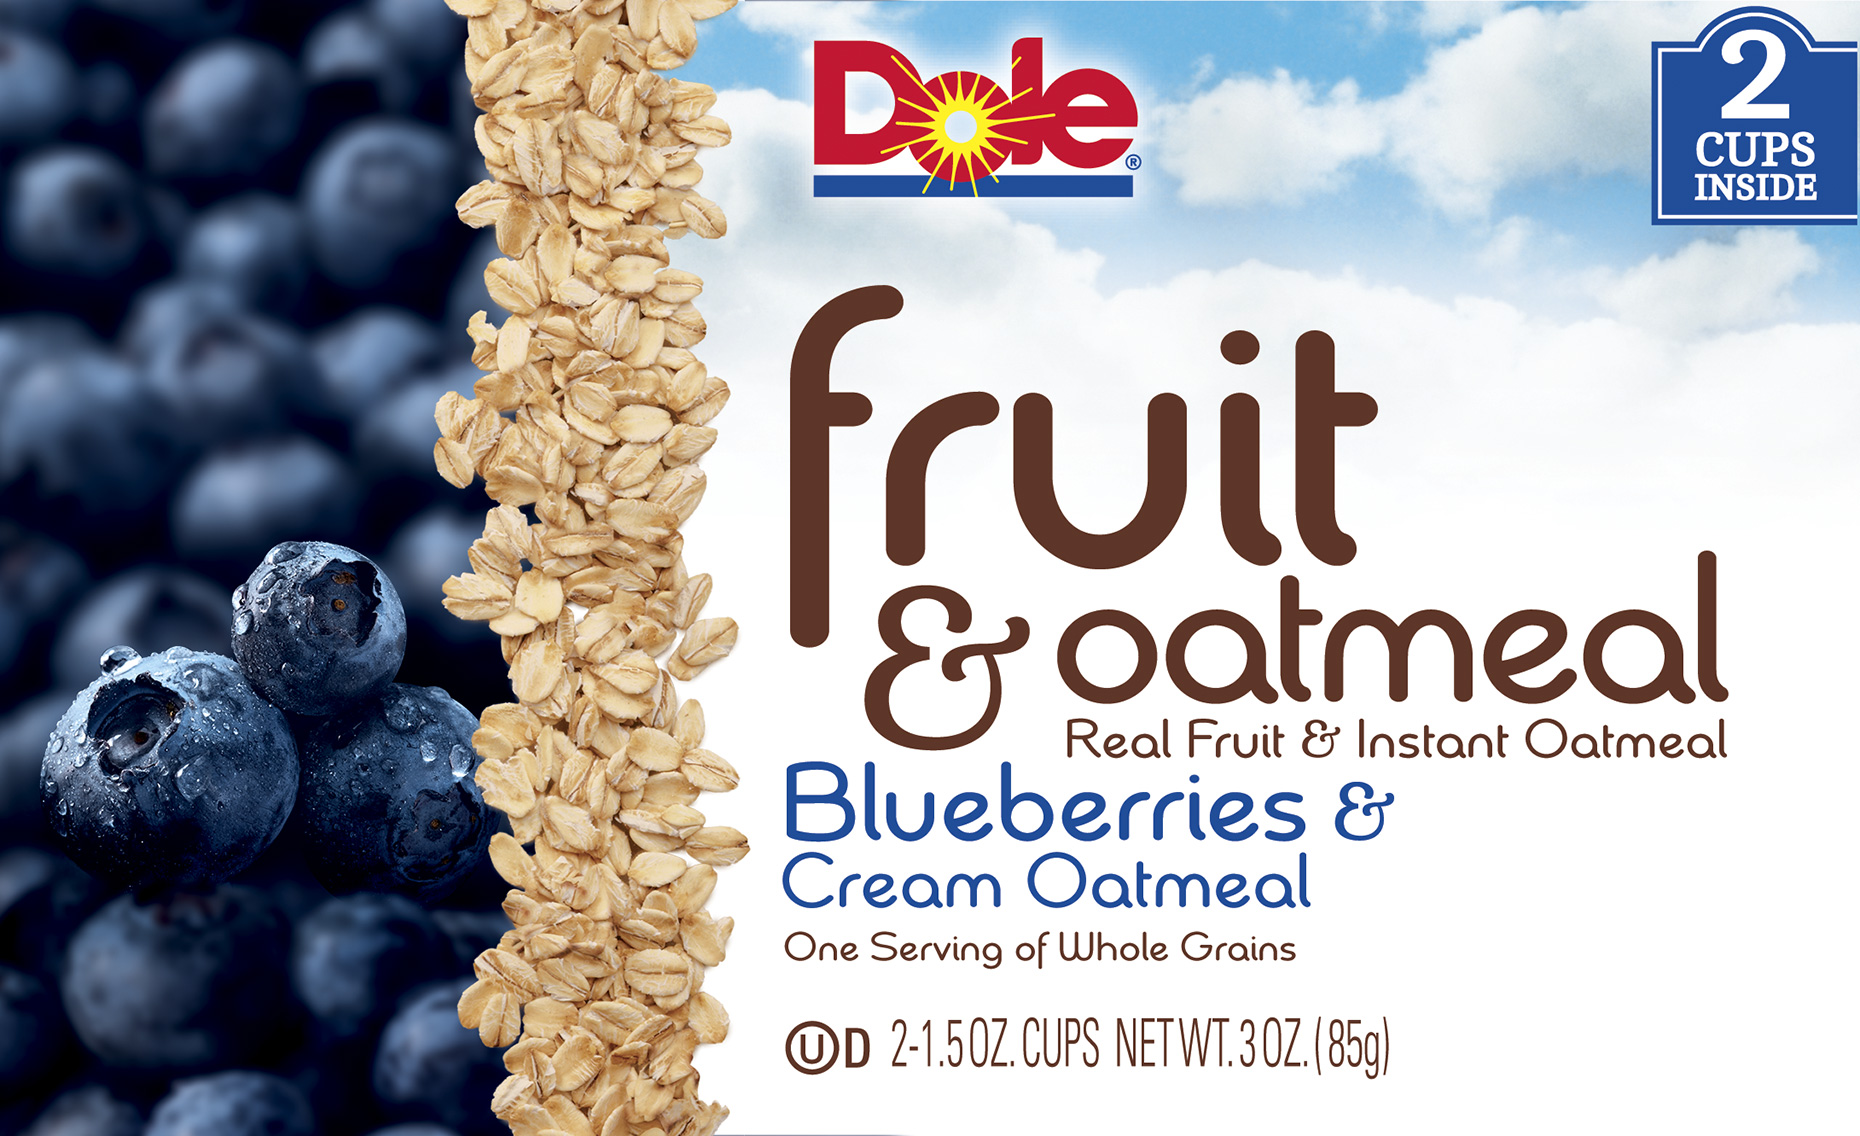 5498-Dole-Quaker-Photomask---Blueberries